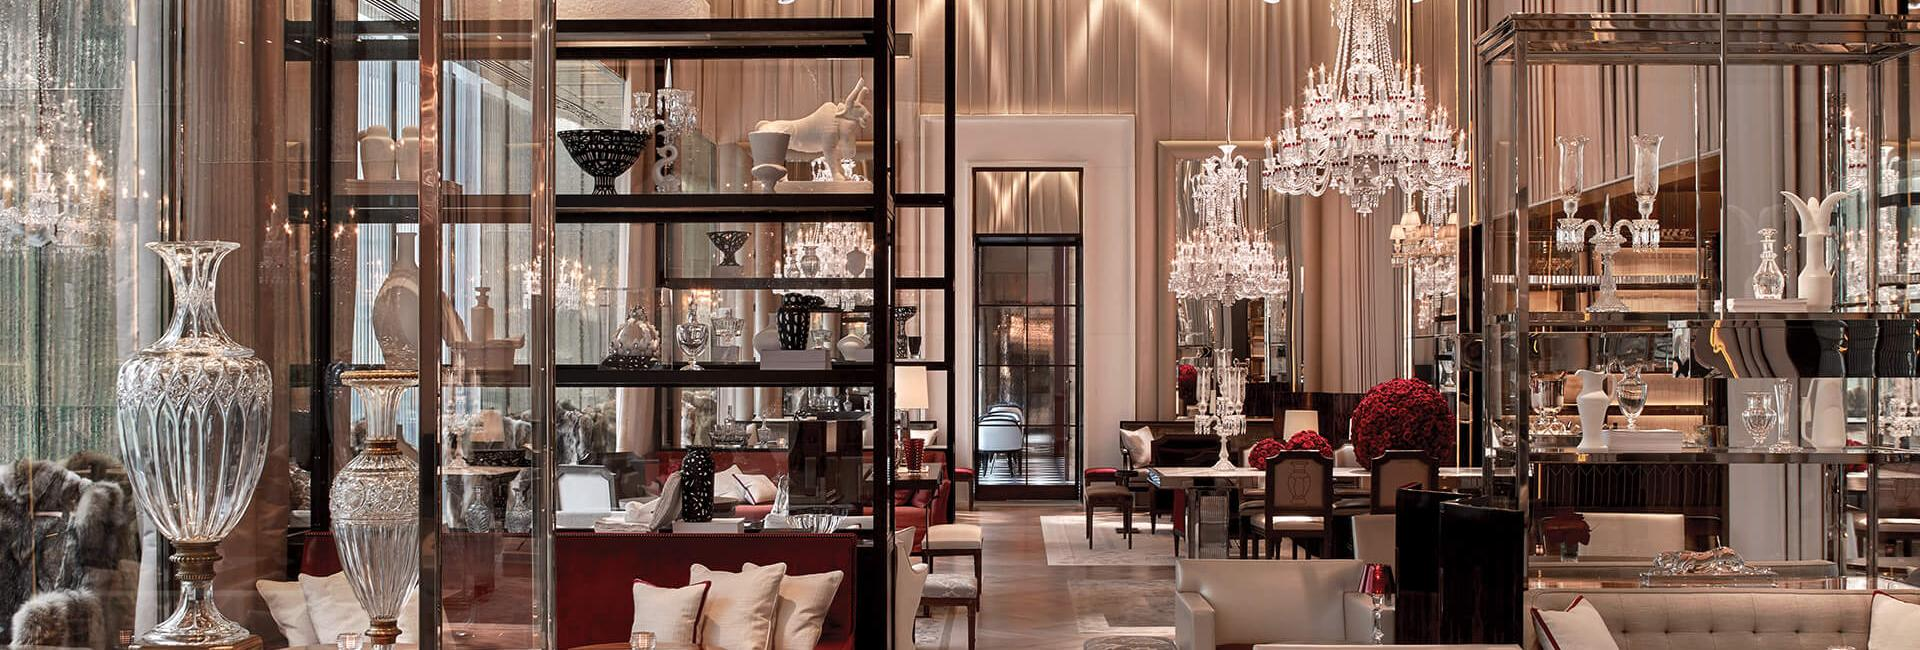 Grand Salon Luxury Hotel In Manhattan Nyc Baccarat Hotel